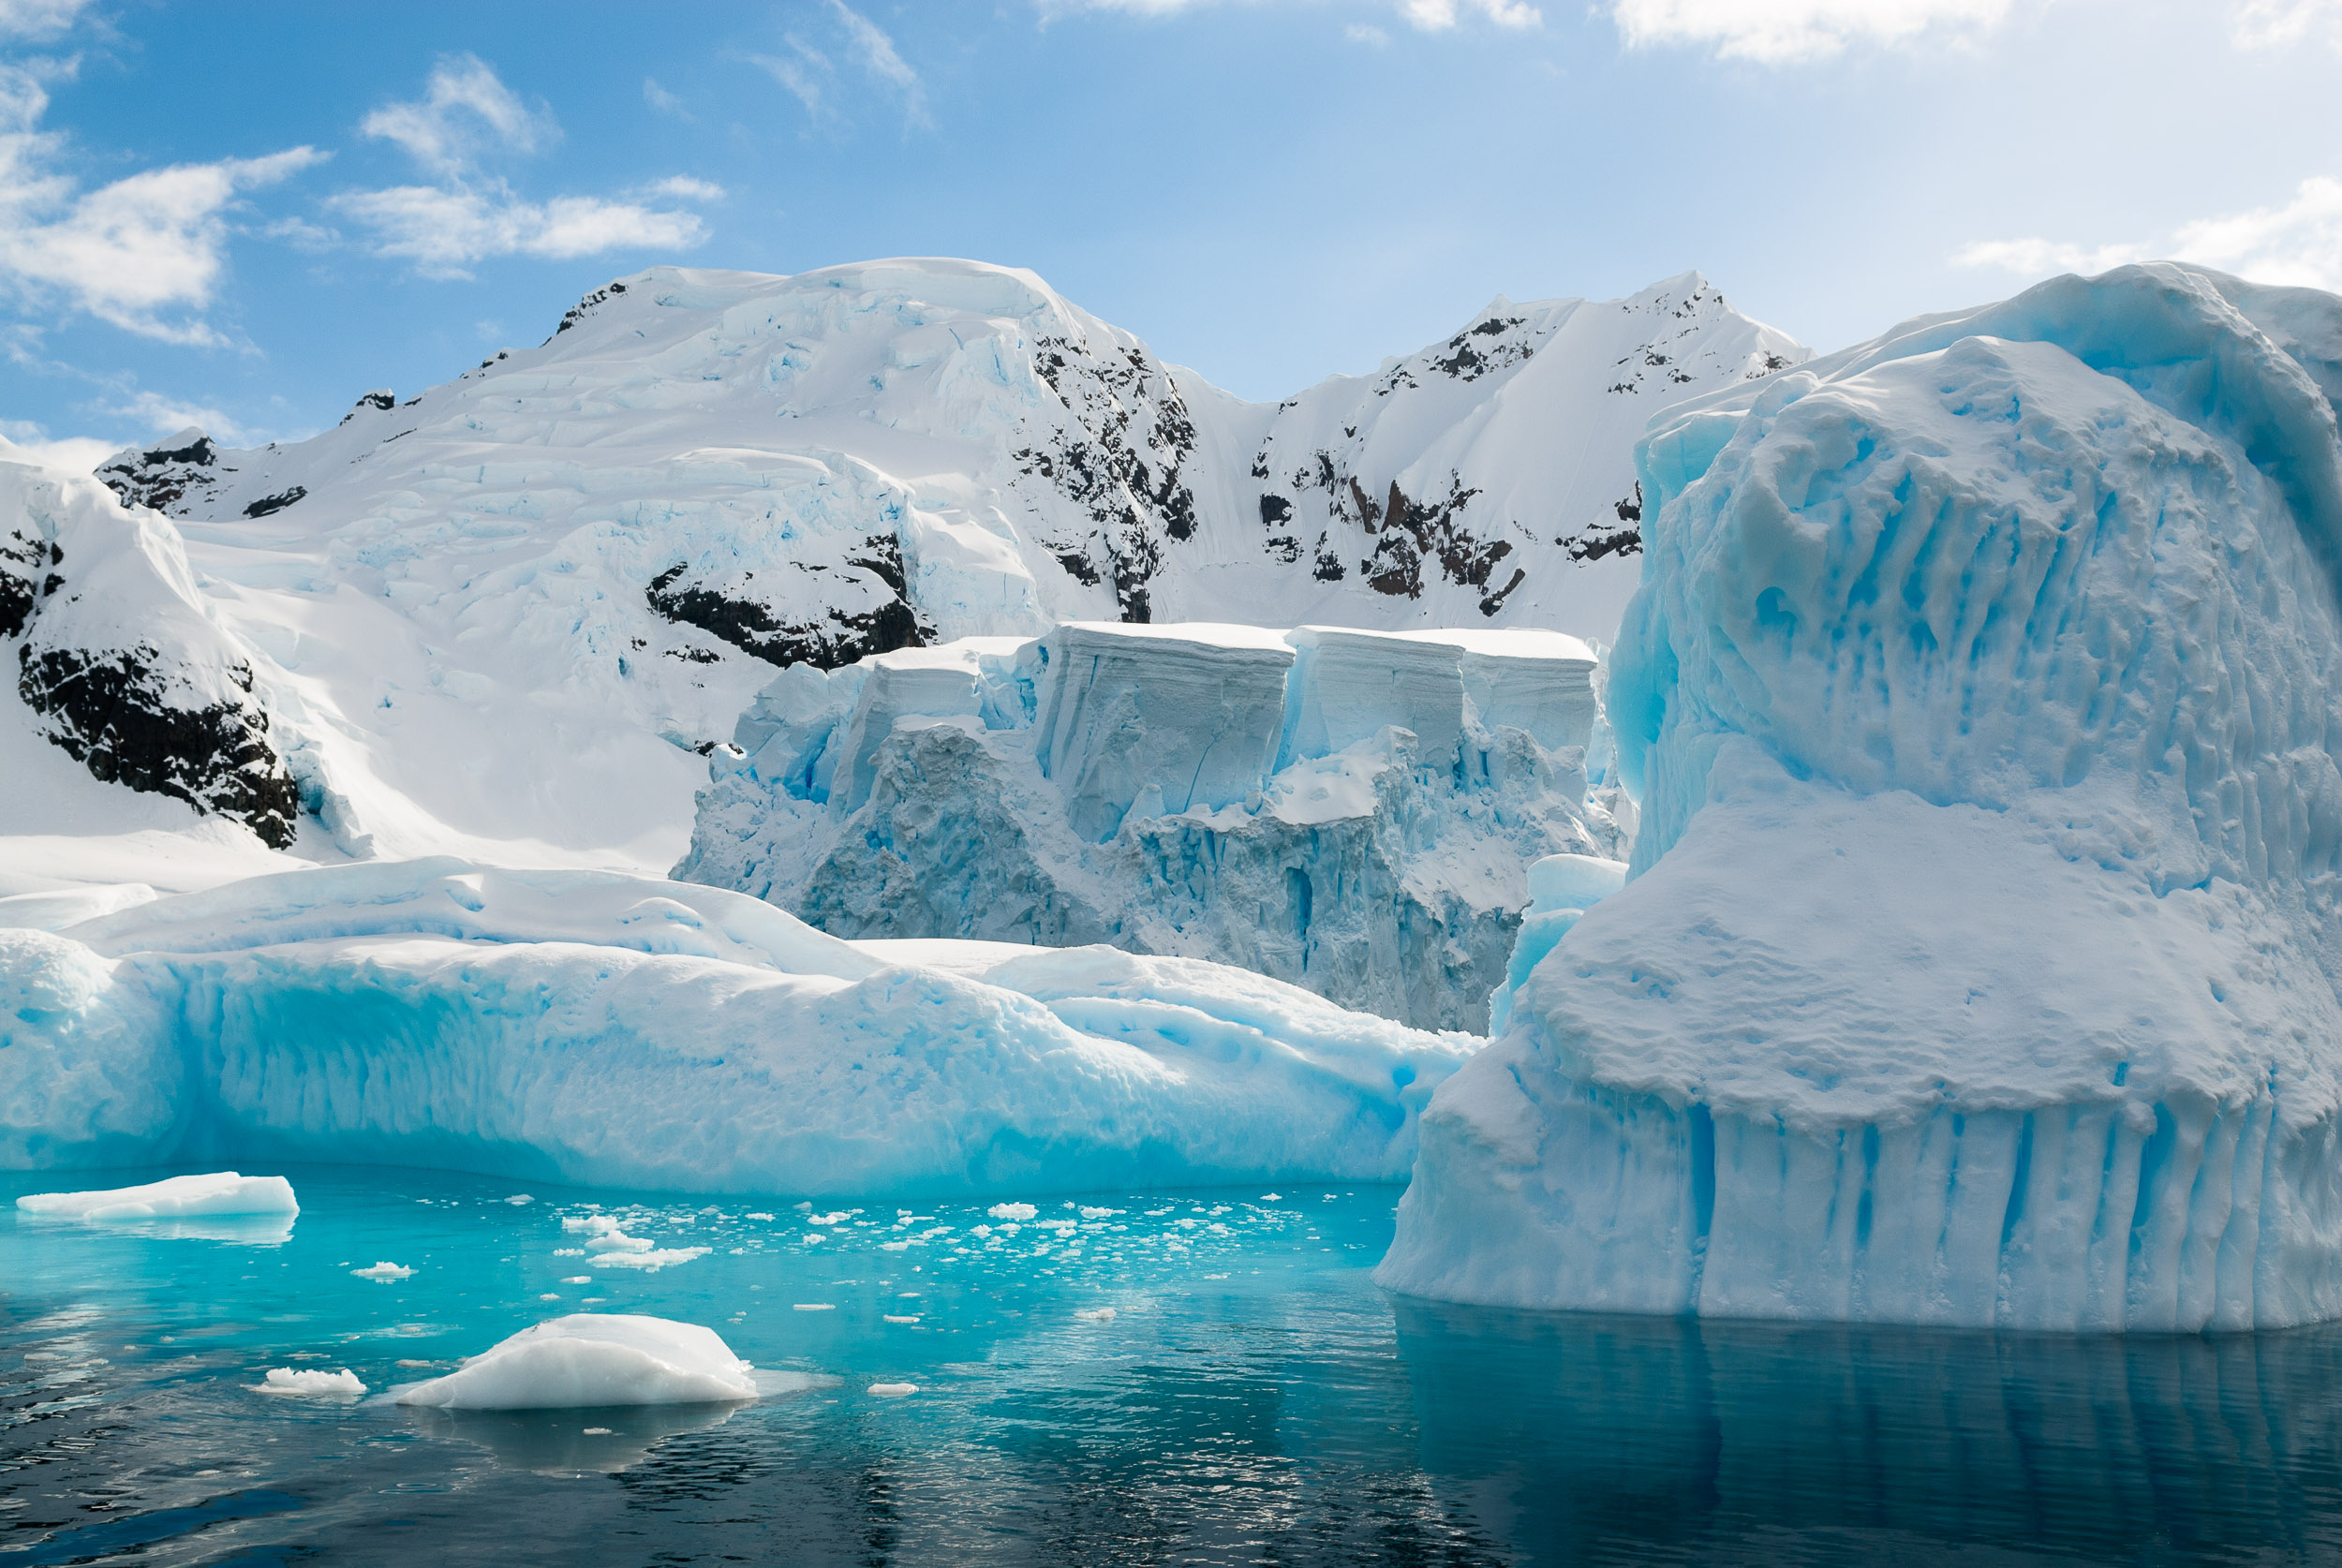 Glacier and icebergs, Paradise Harbour, Danco Coast, Graham Land, Antarctica. Due to its picturesque landscape, with dramatic mountains and glaciers, Paradise Harbour is visited by numerous expedition cruise ships each Antarctic summer.